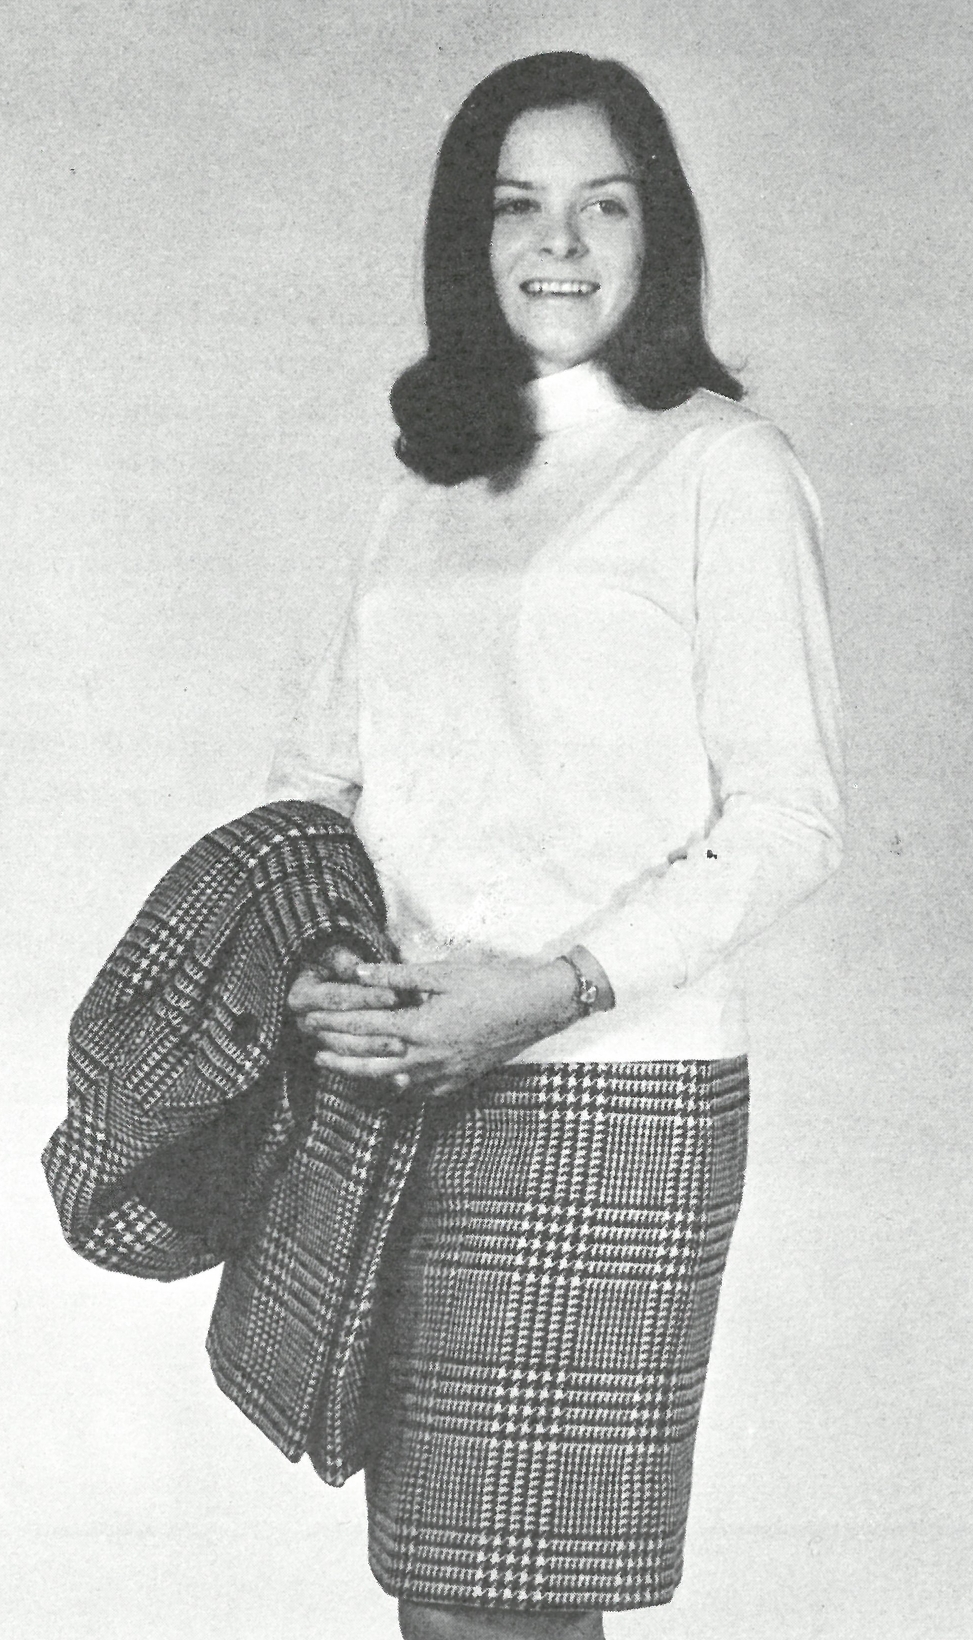 Sarah Sheffield, 1969, editor of Agri-Life, a student publication of the College of Agriculture and Life Sciences